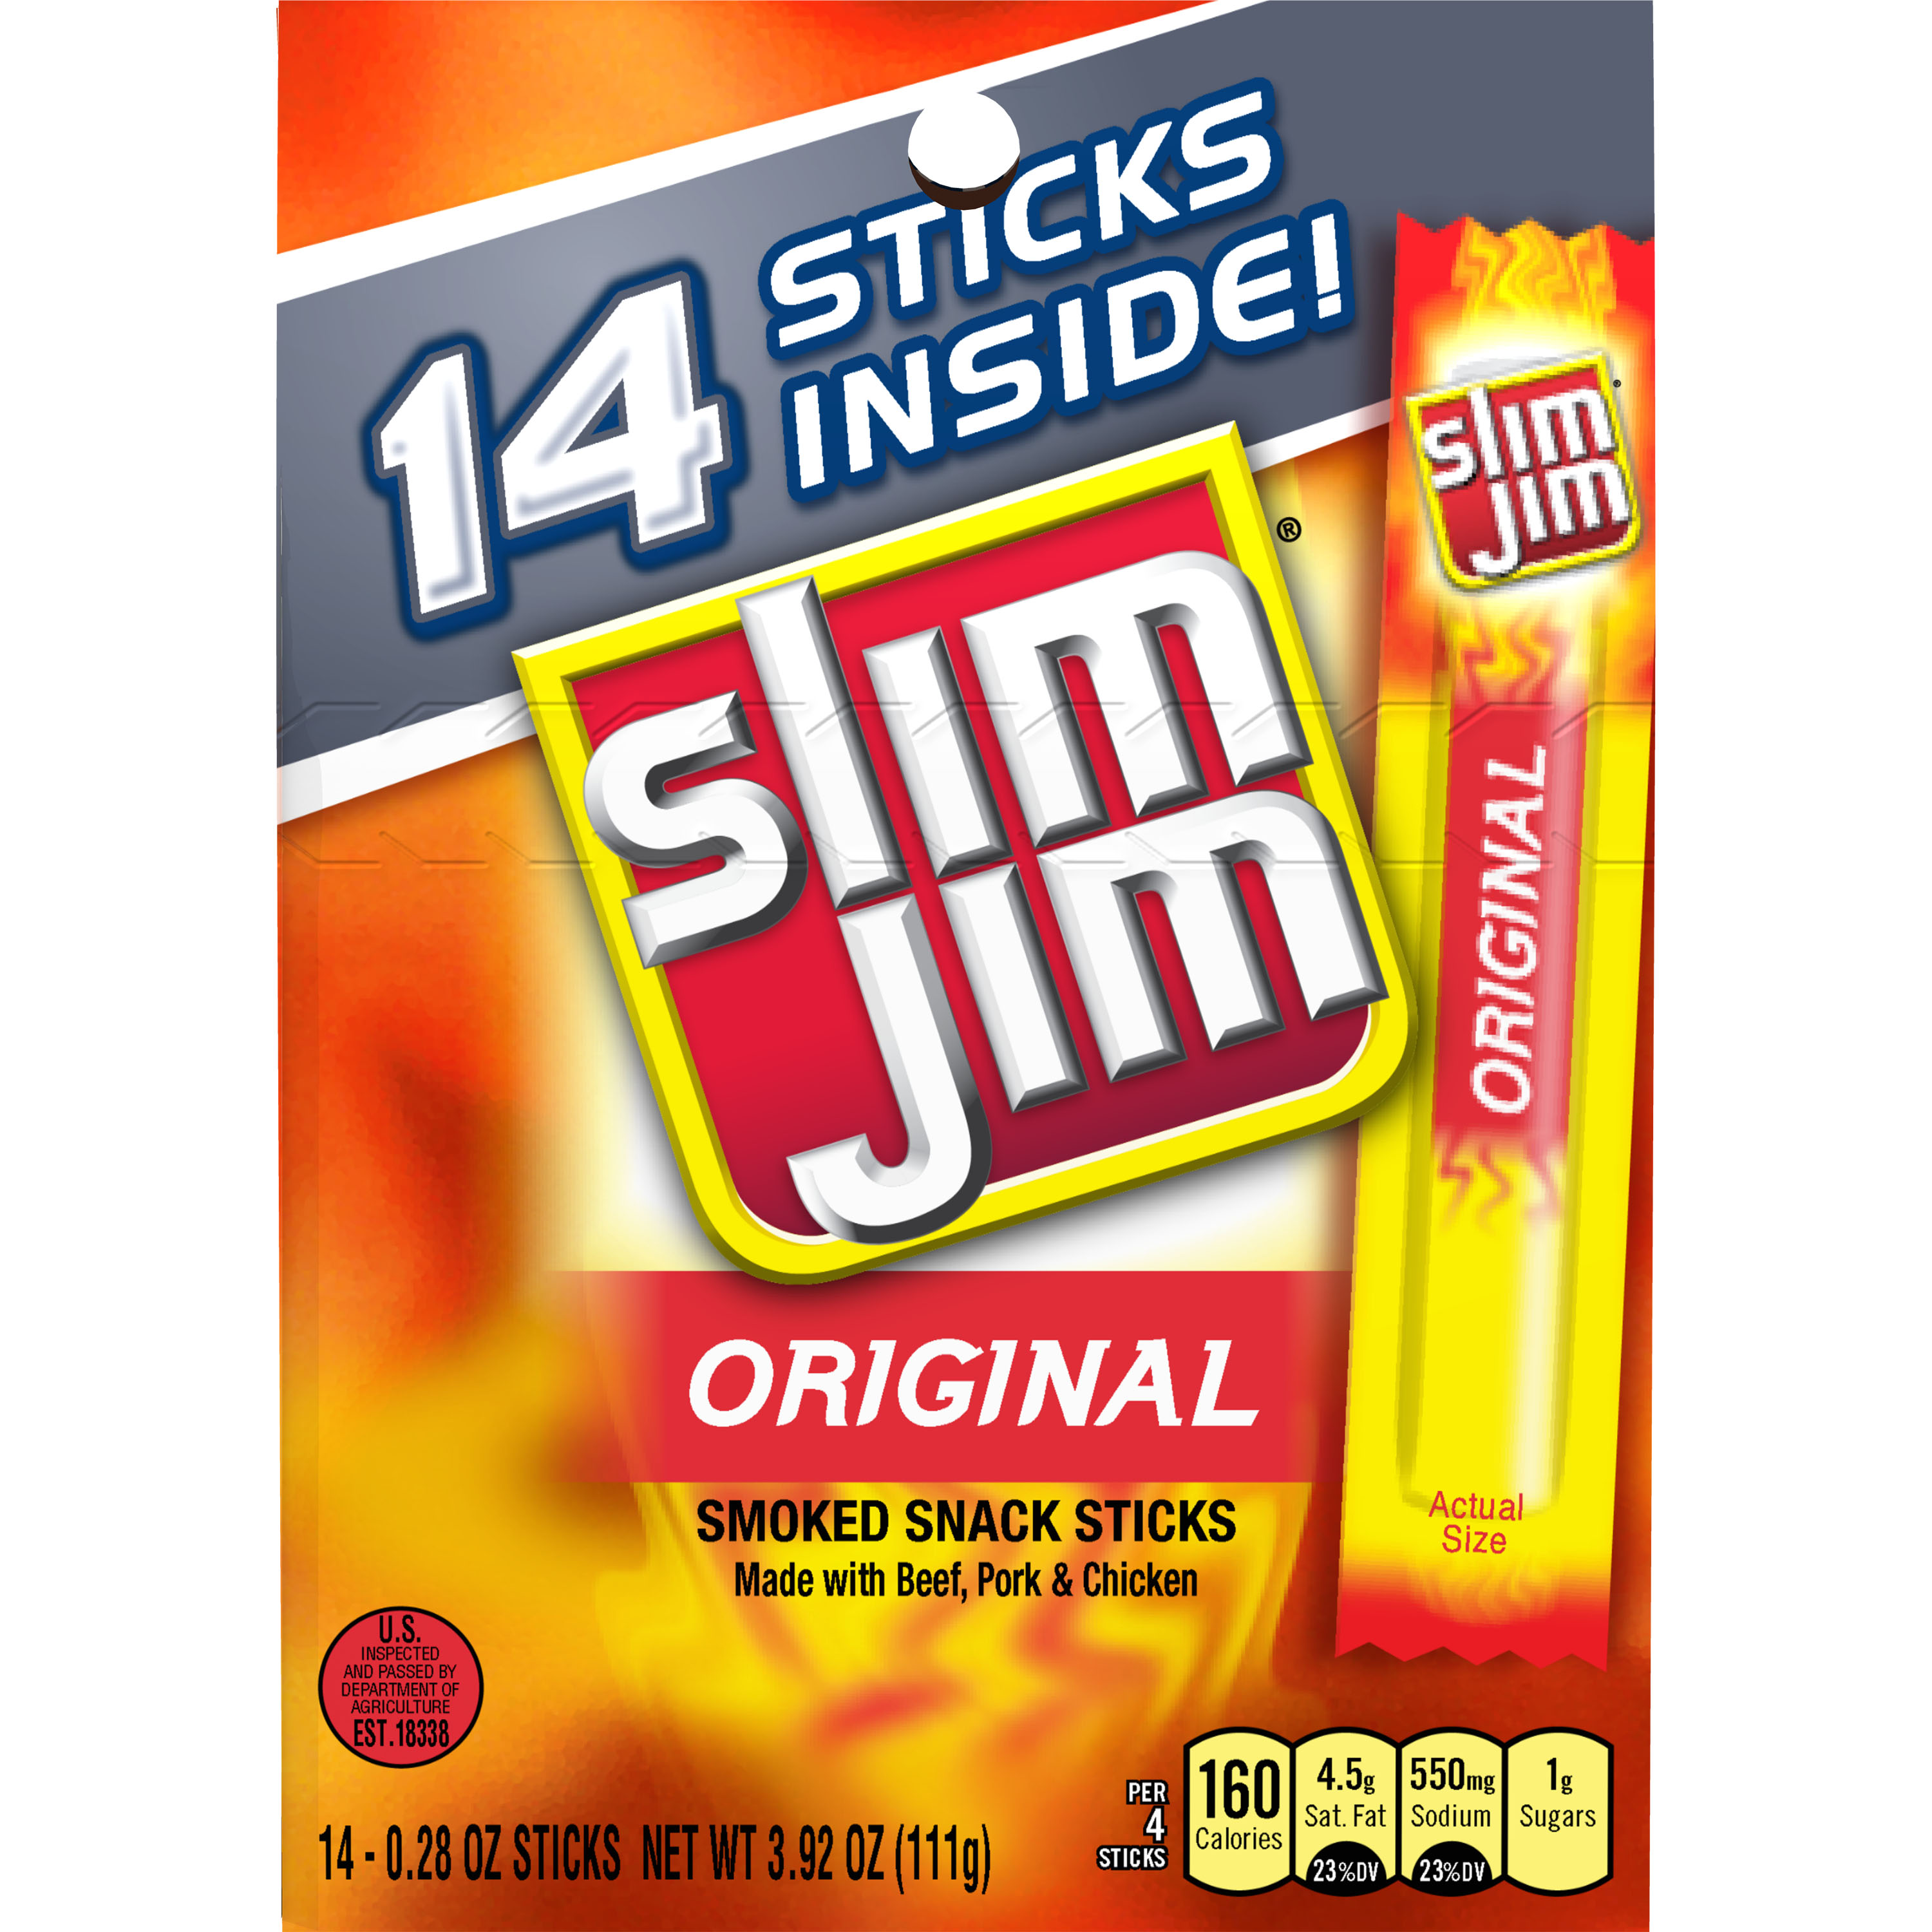 Slim Jim Original Smoked Snack Sticks, 0.28 oz, 14 ct